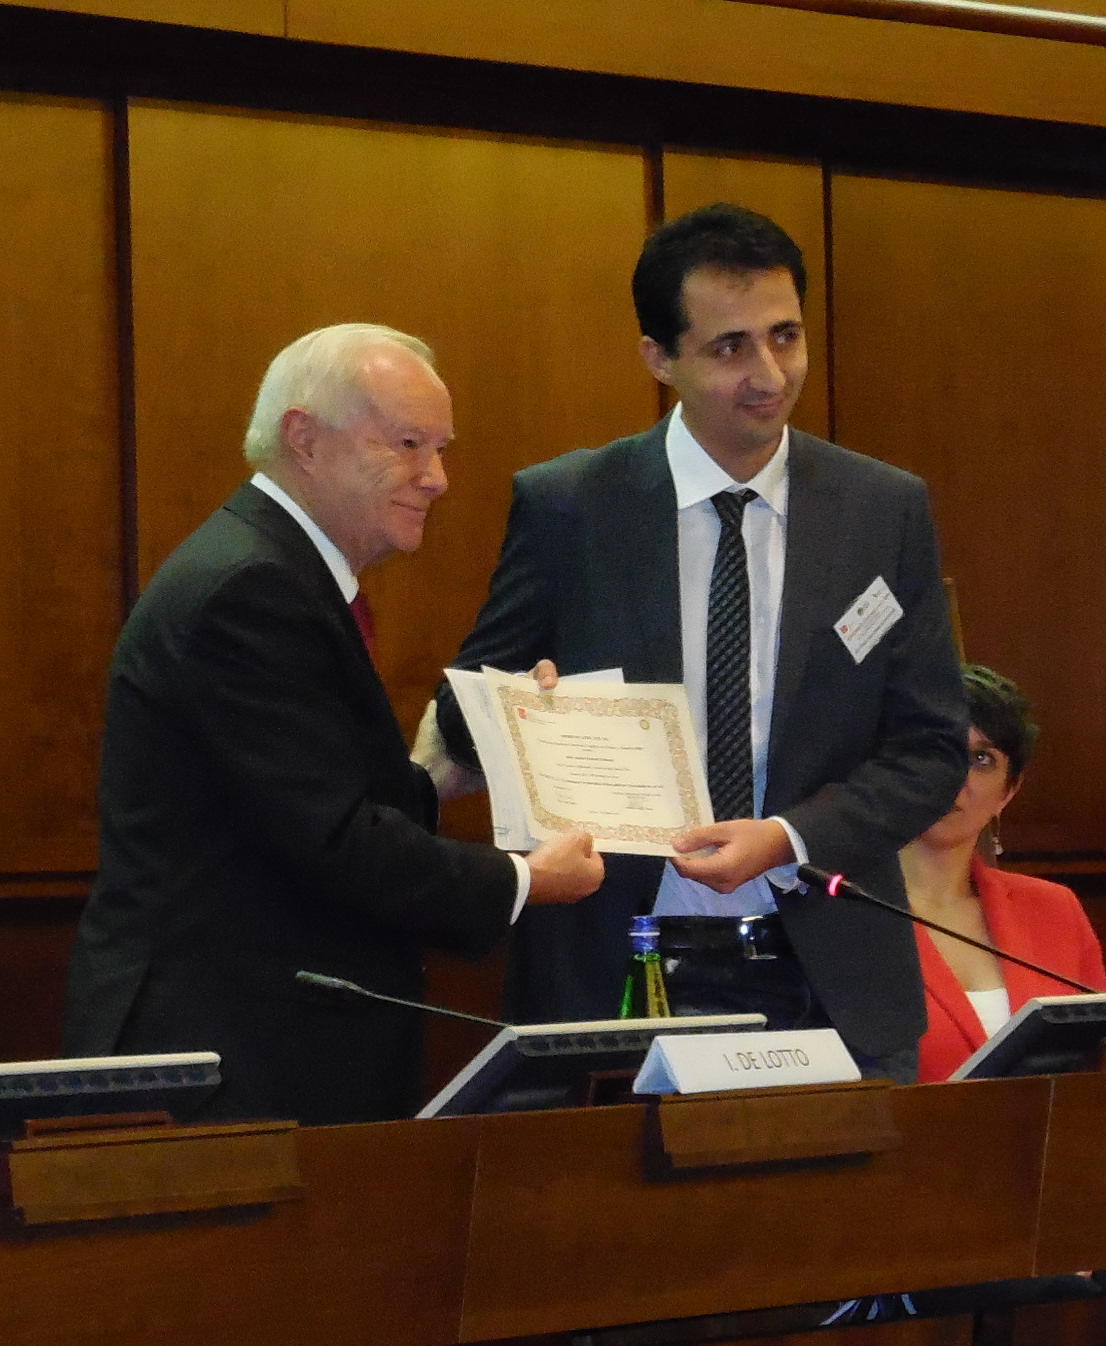 Antonio Giovanni Schiavone receiving the ETIC Award